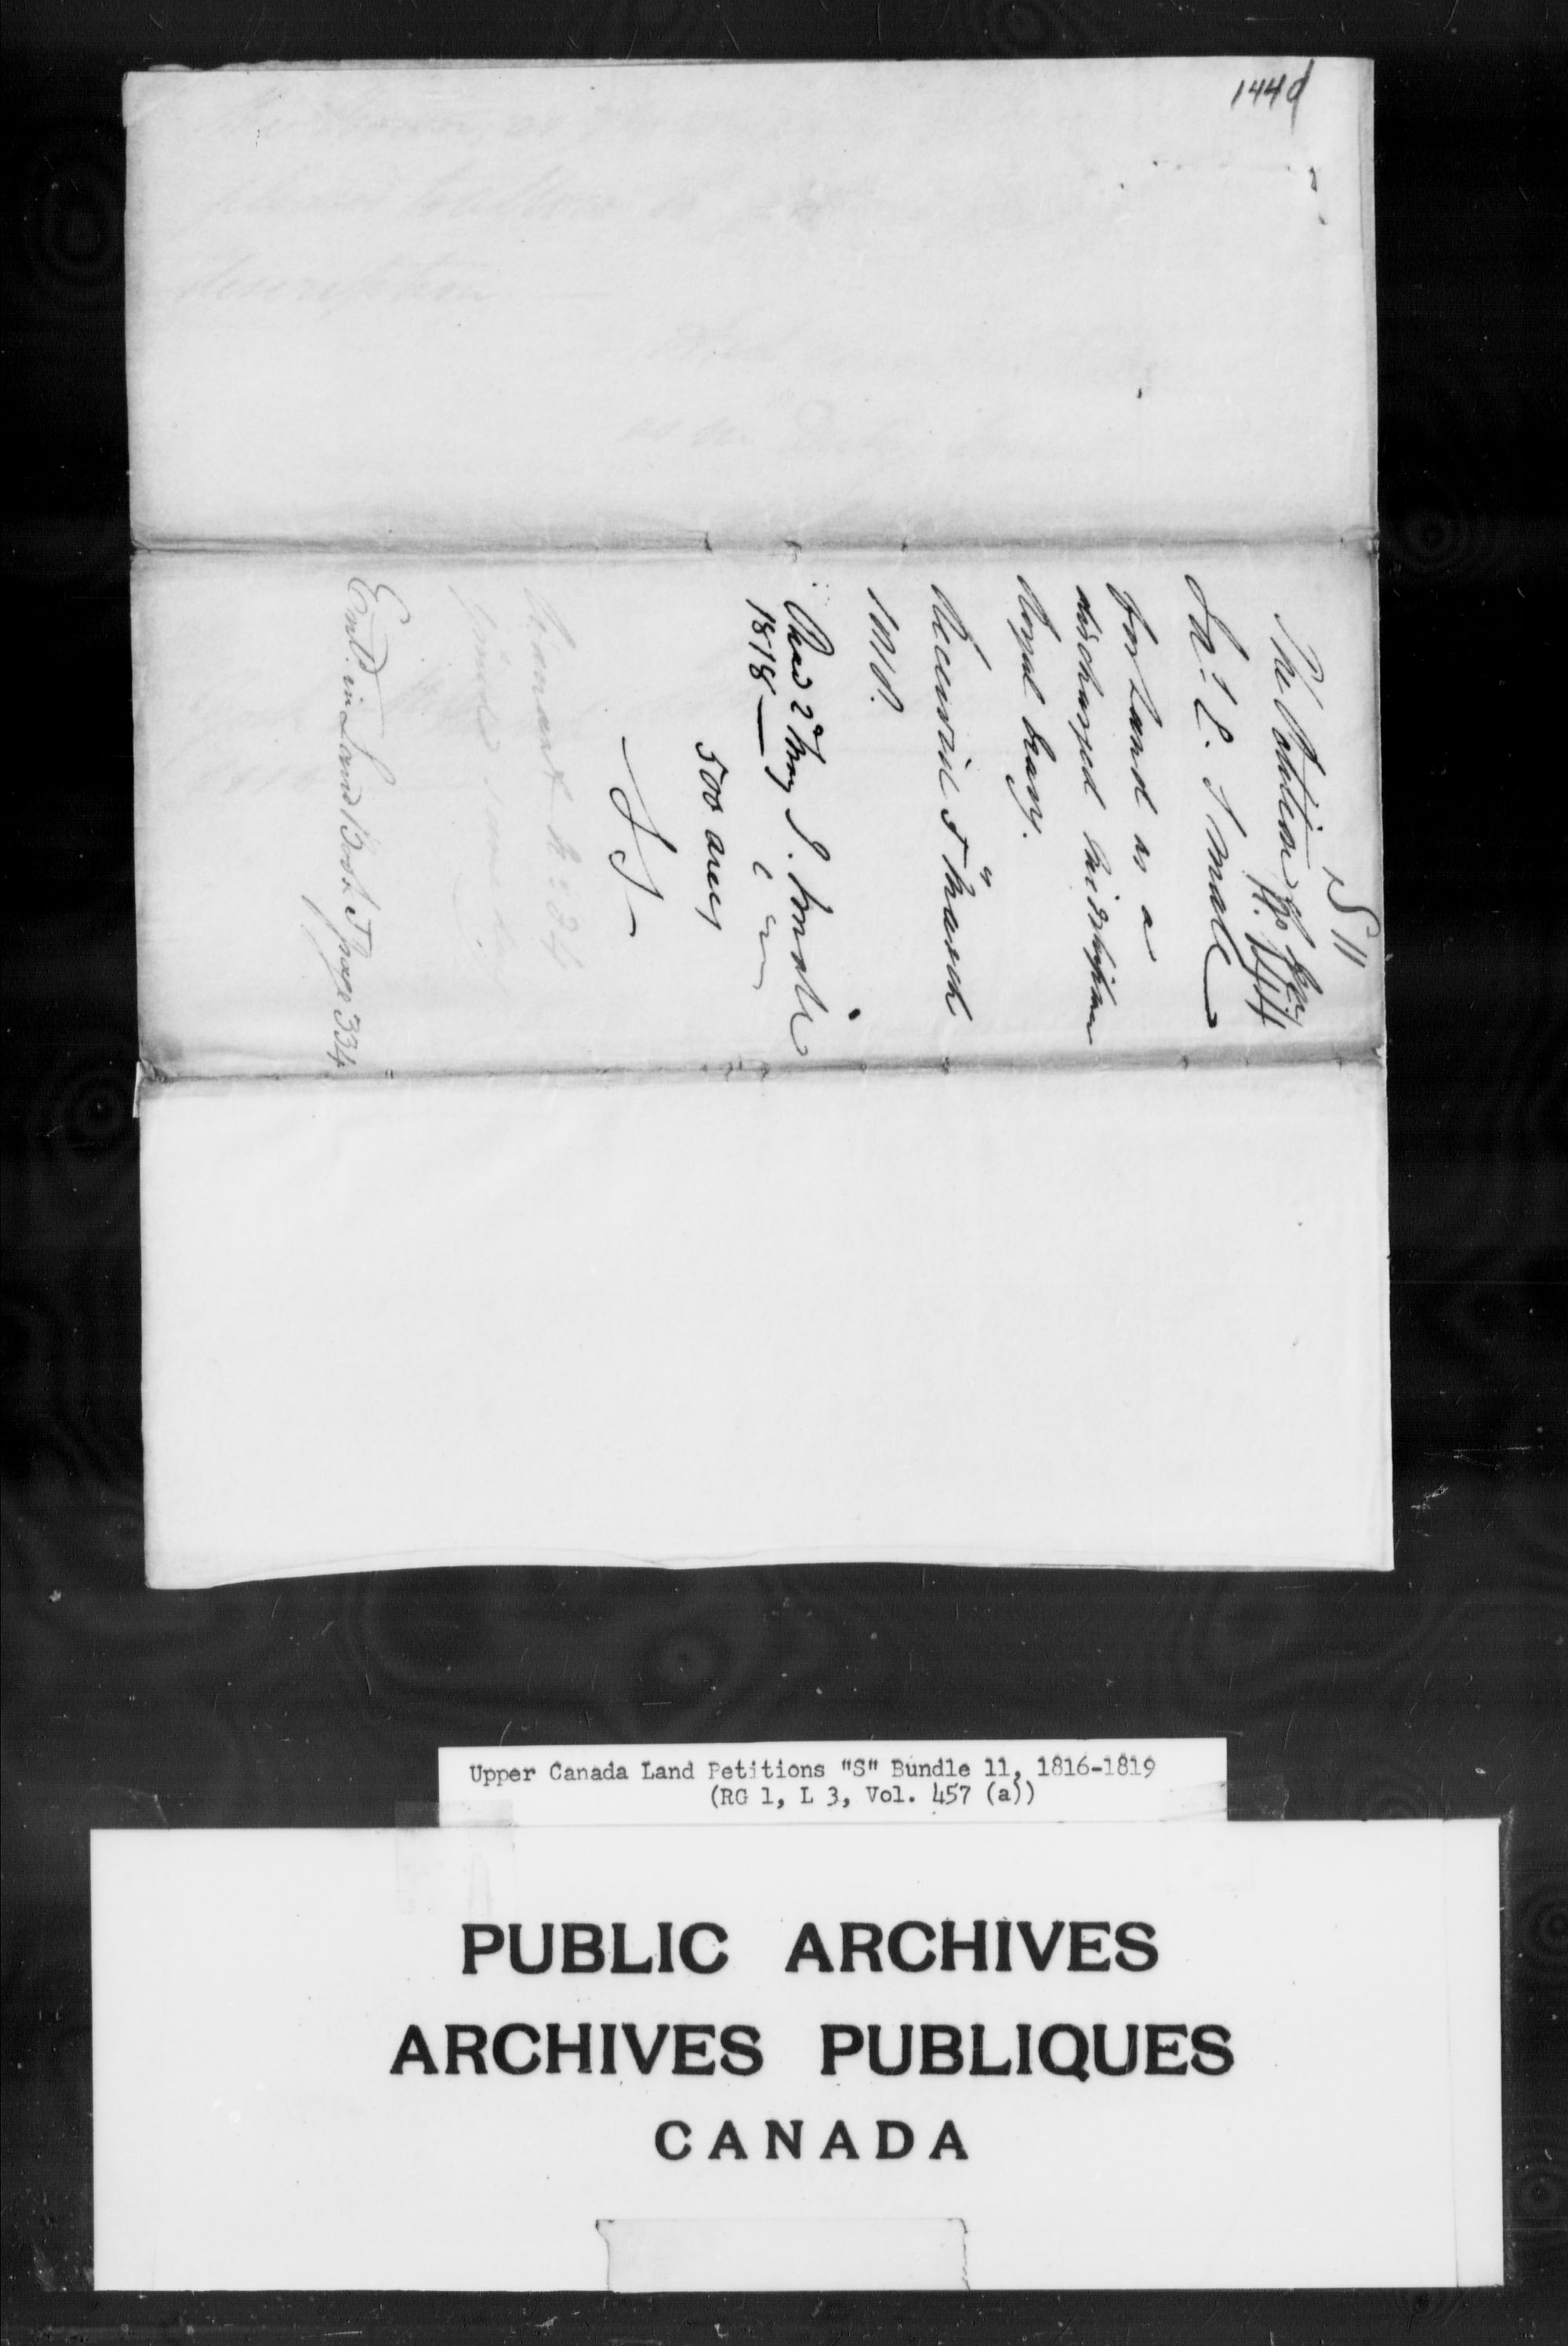 Title: Upper Canada Land Petitions (1763-1865) - Mikan Number: 205131 - Microform: c-2811